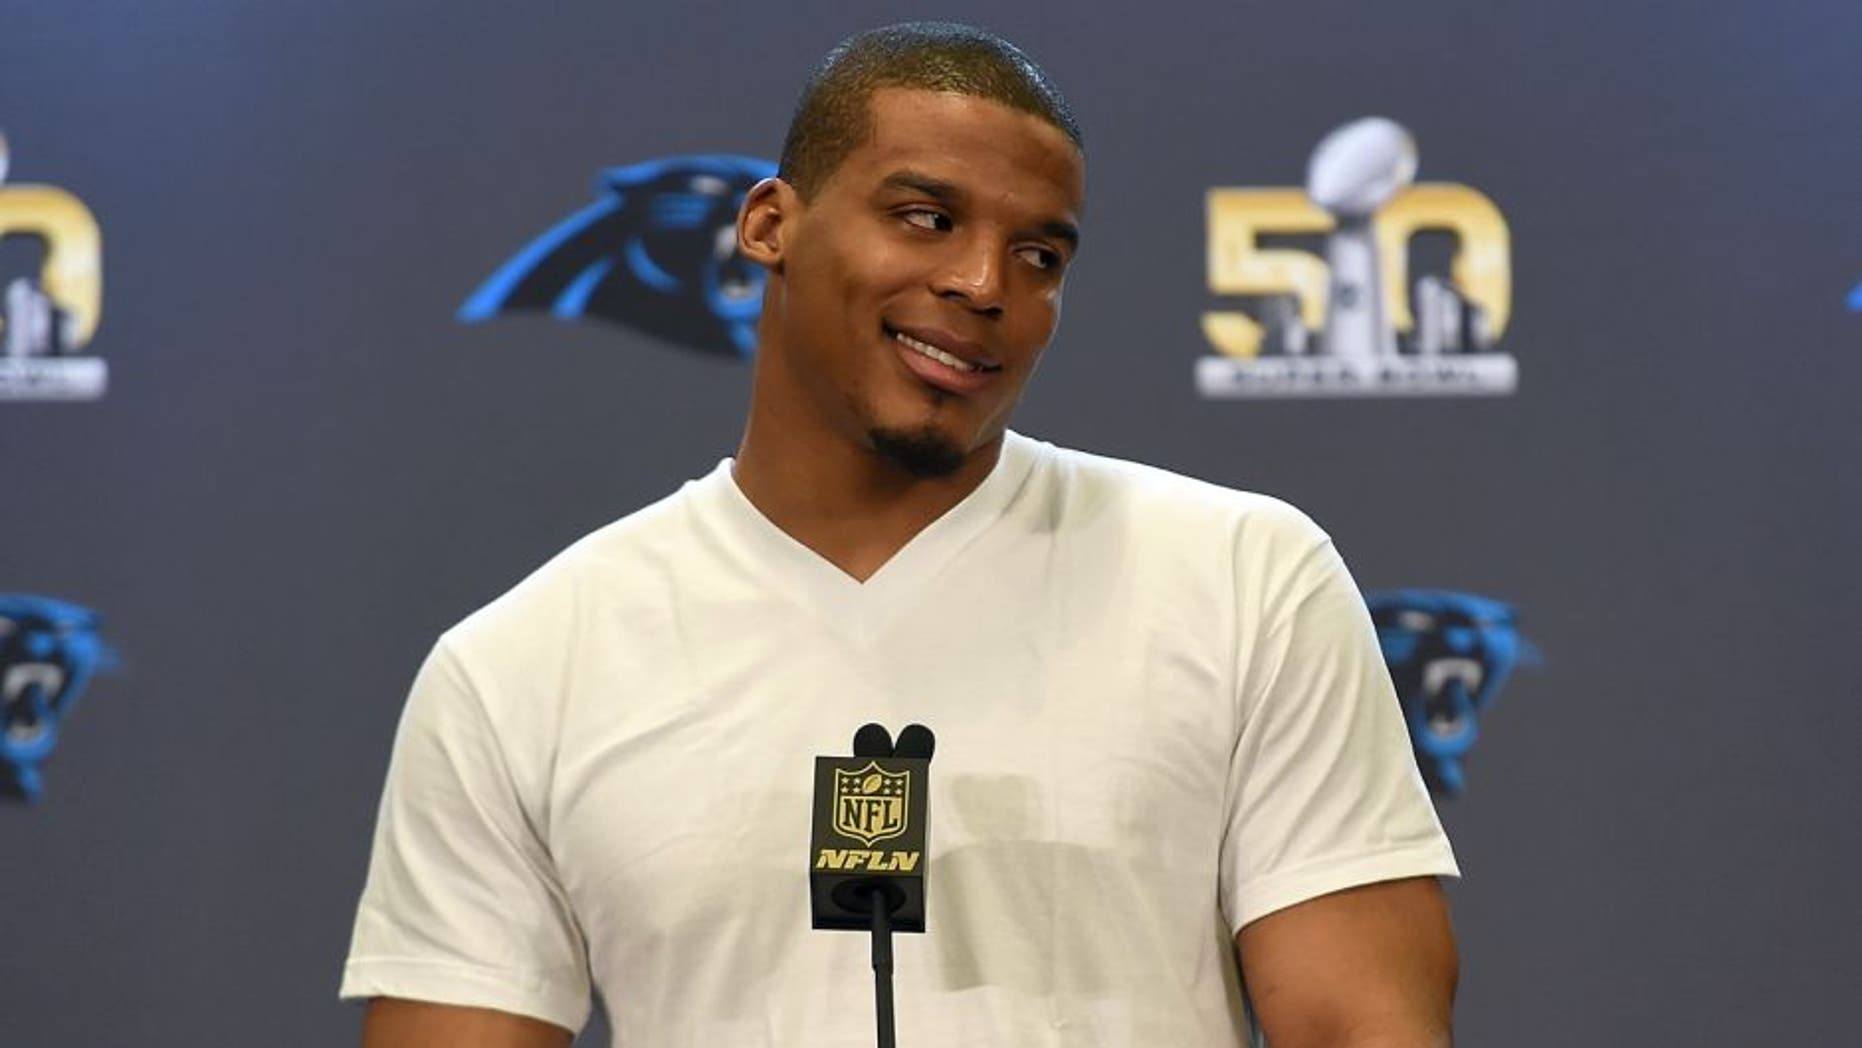 SAN JOSE, CA - FEBRUARY 02: Quarterback Cam Newton #1 of the Carolina Panther addresses the media prior to Super Bowl 50 at the San Jose Convention Center/ San Jose Marriott on February 2, 2016 in San Jose, California. (Photo by Thearon W. Henderson/Getty Images)